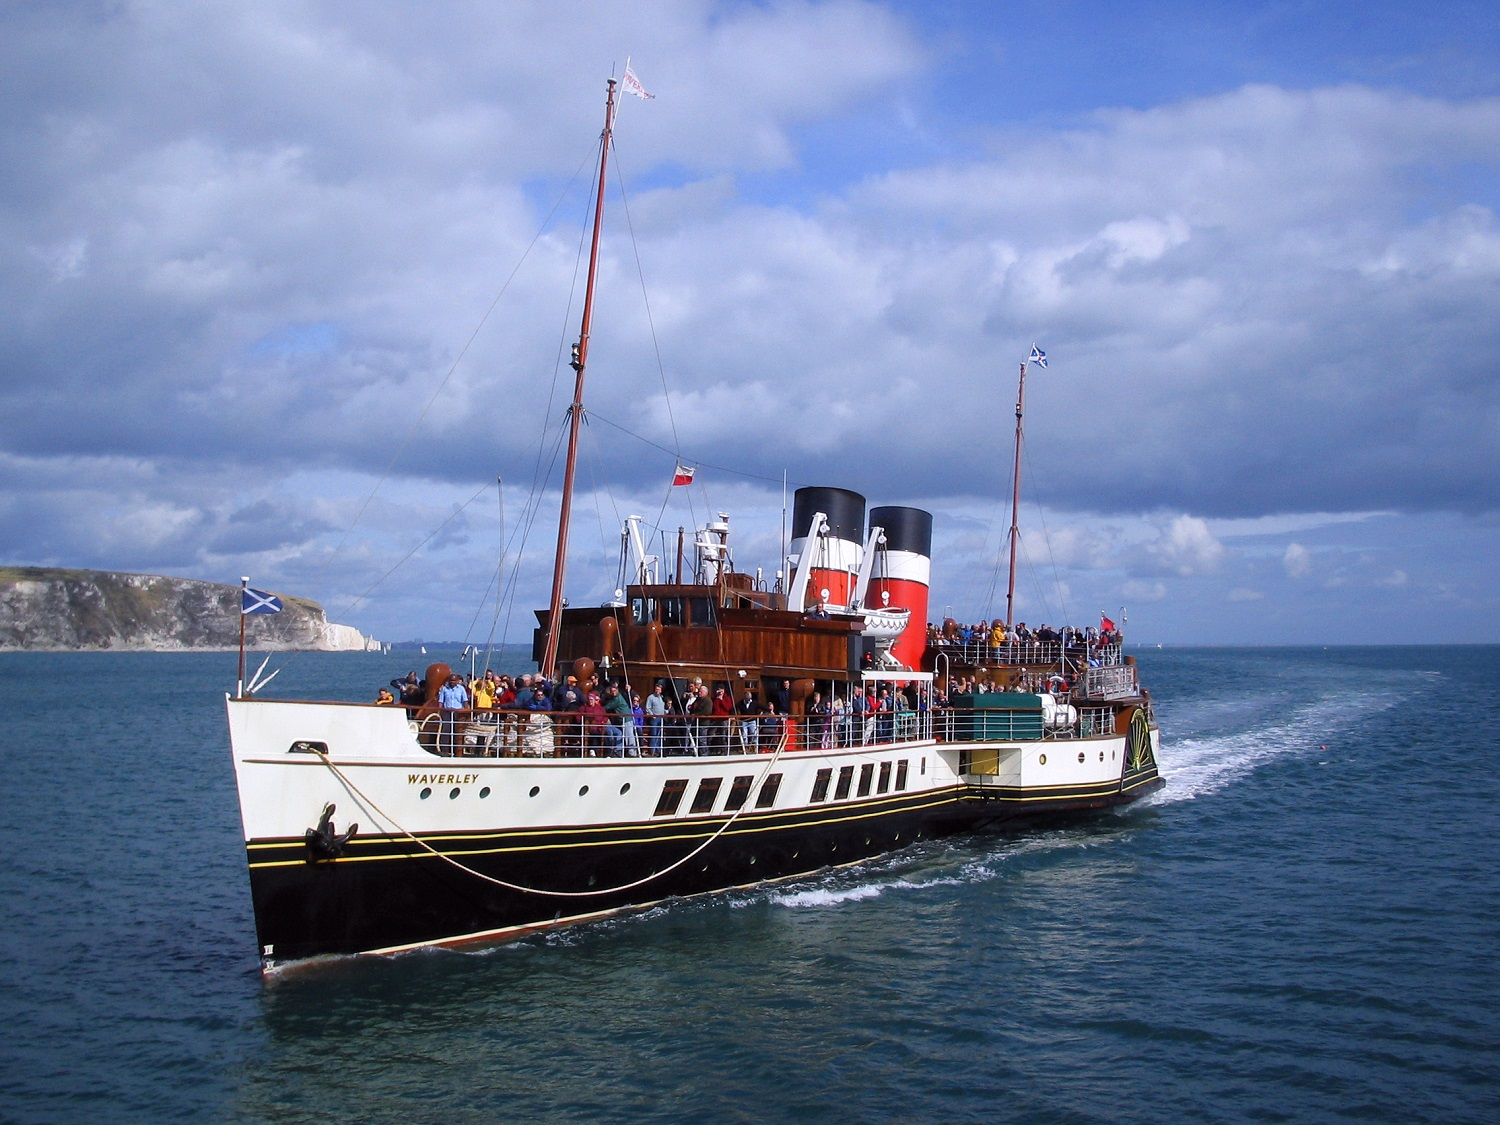 waverley wikipedia